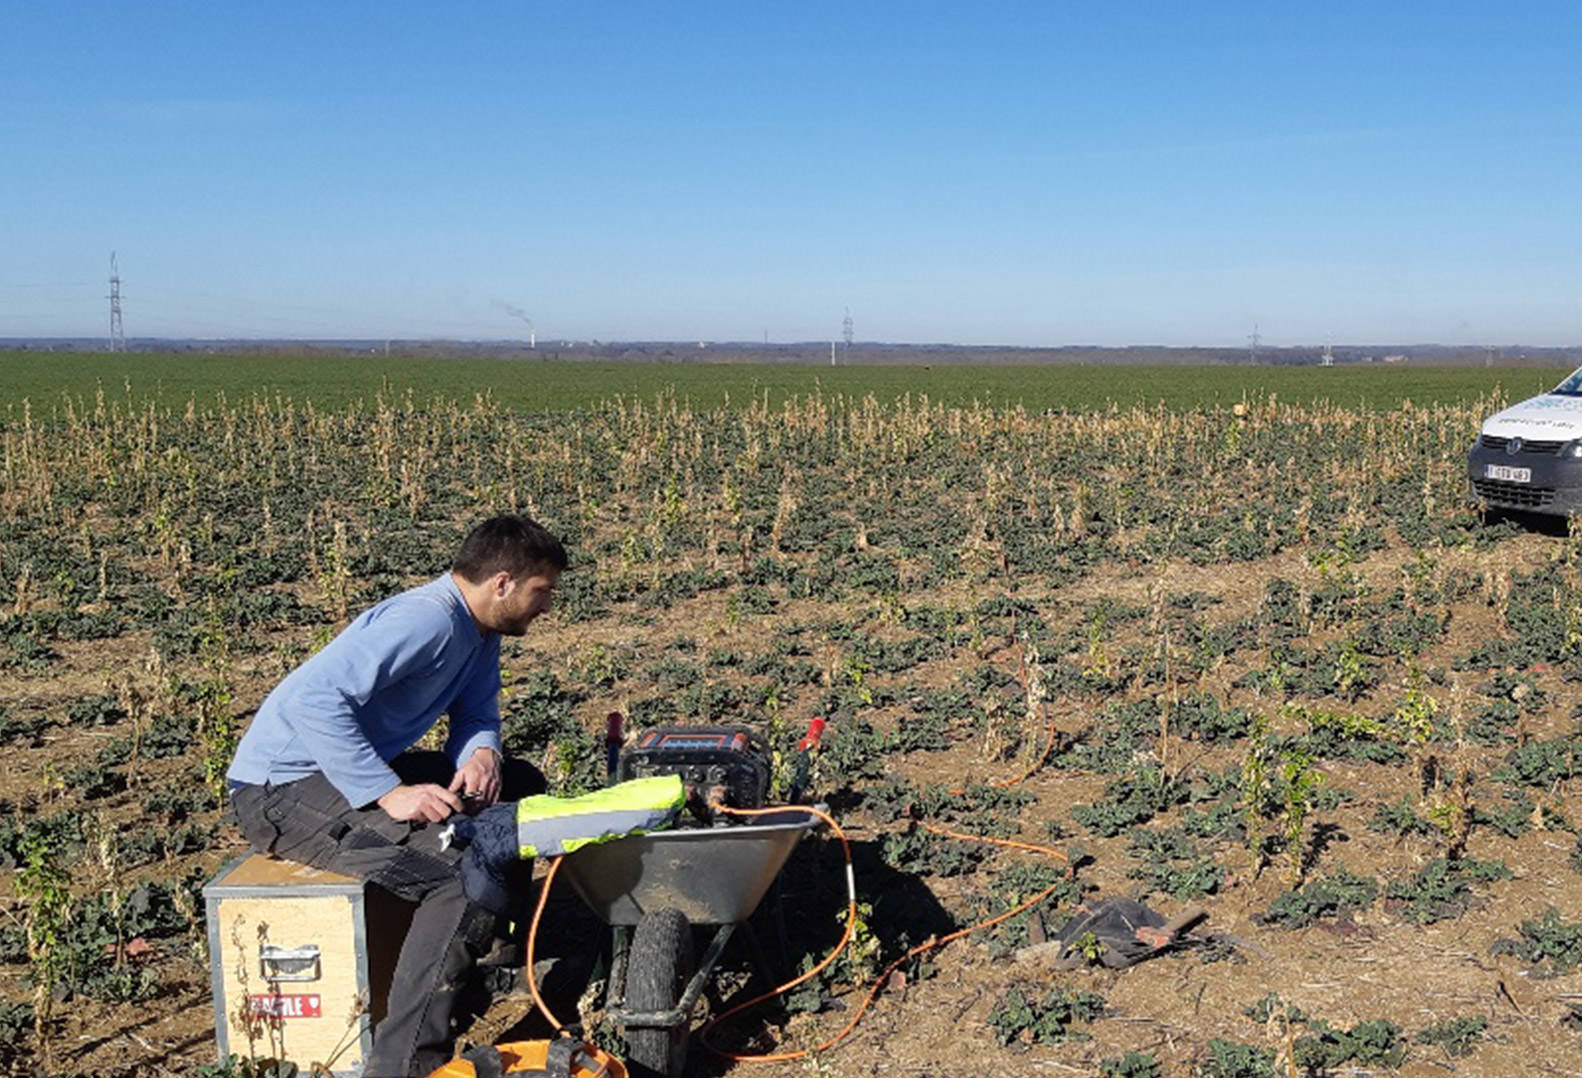 Man performs Geophysical Data Acquisition in Belgium field